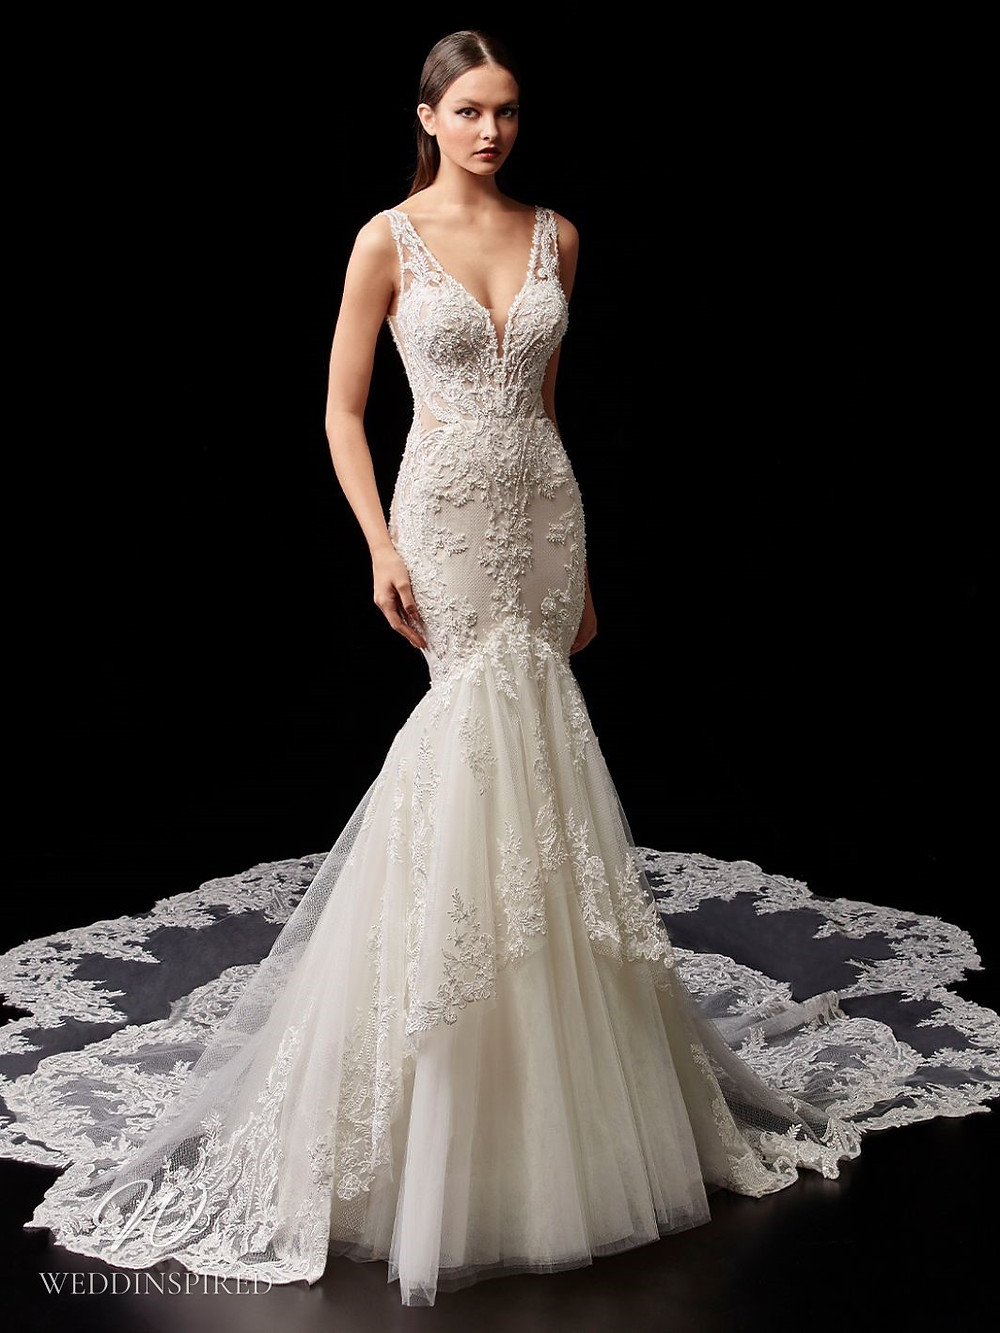 An Enzoani lace and tulle mermaid wedding dress with an illusion train